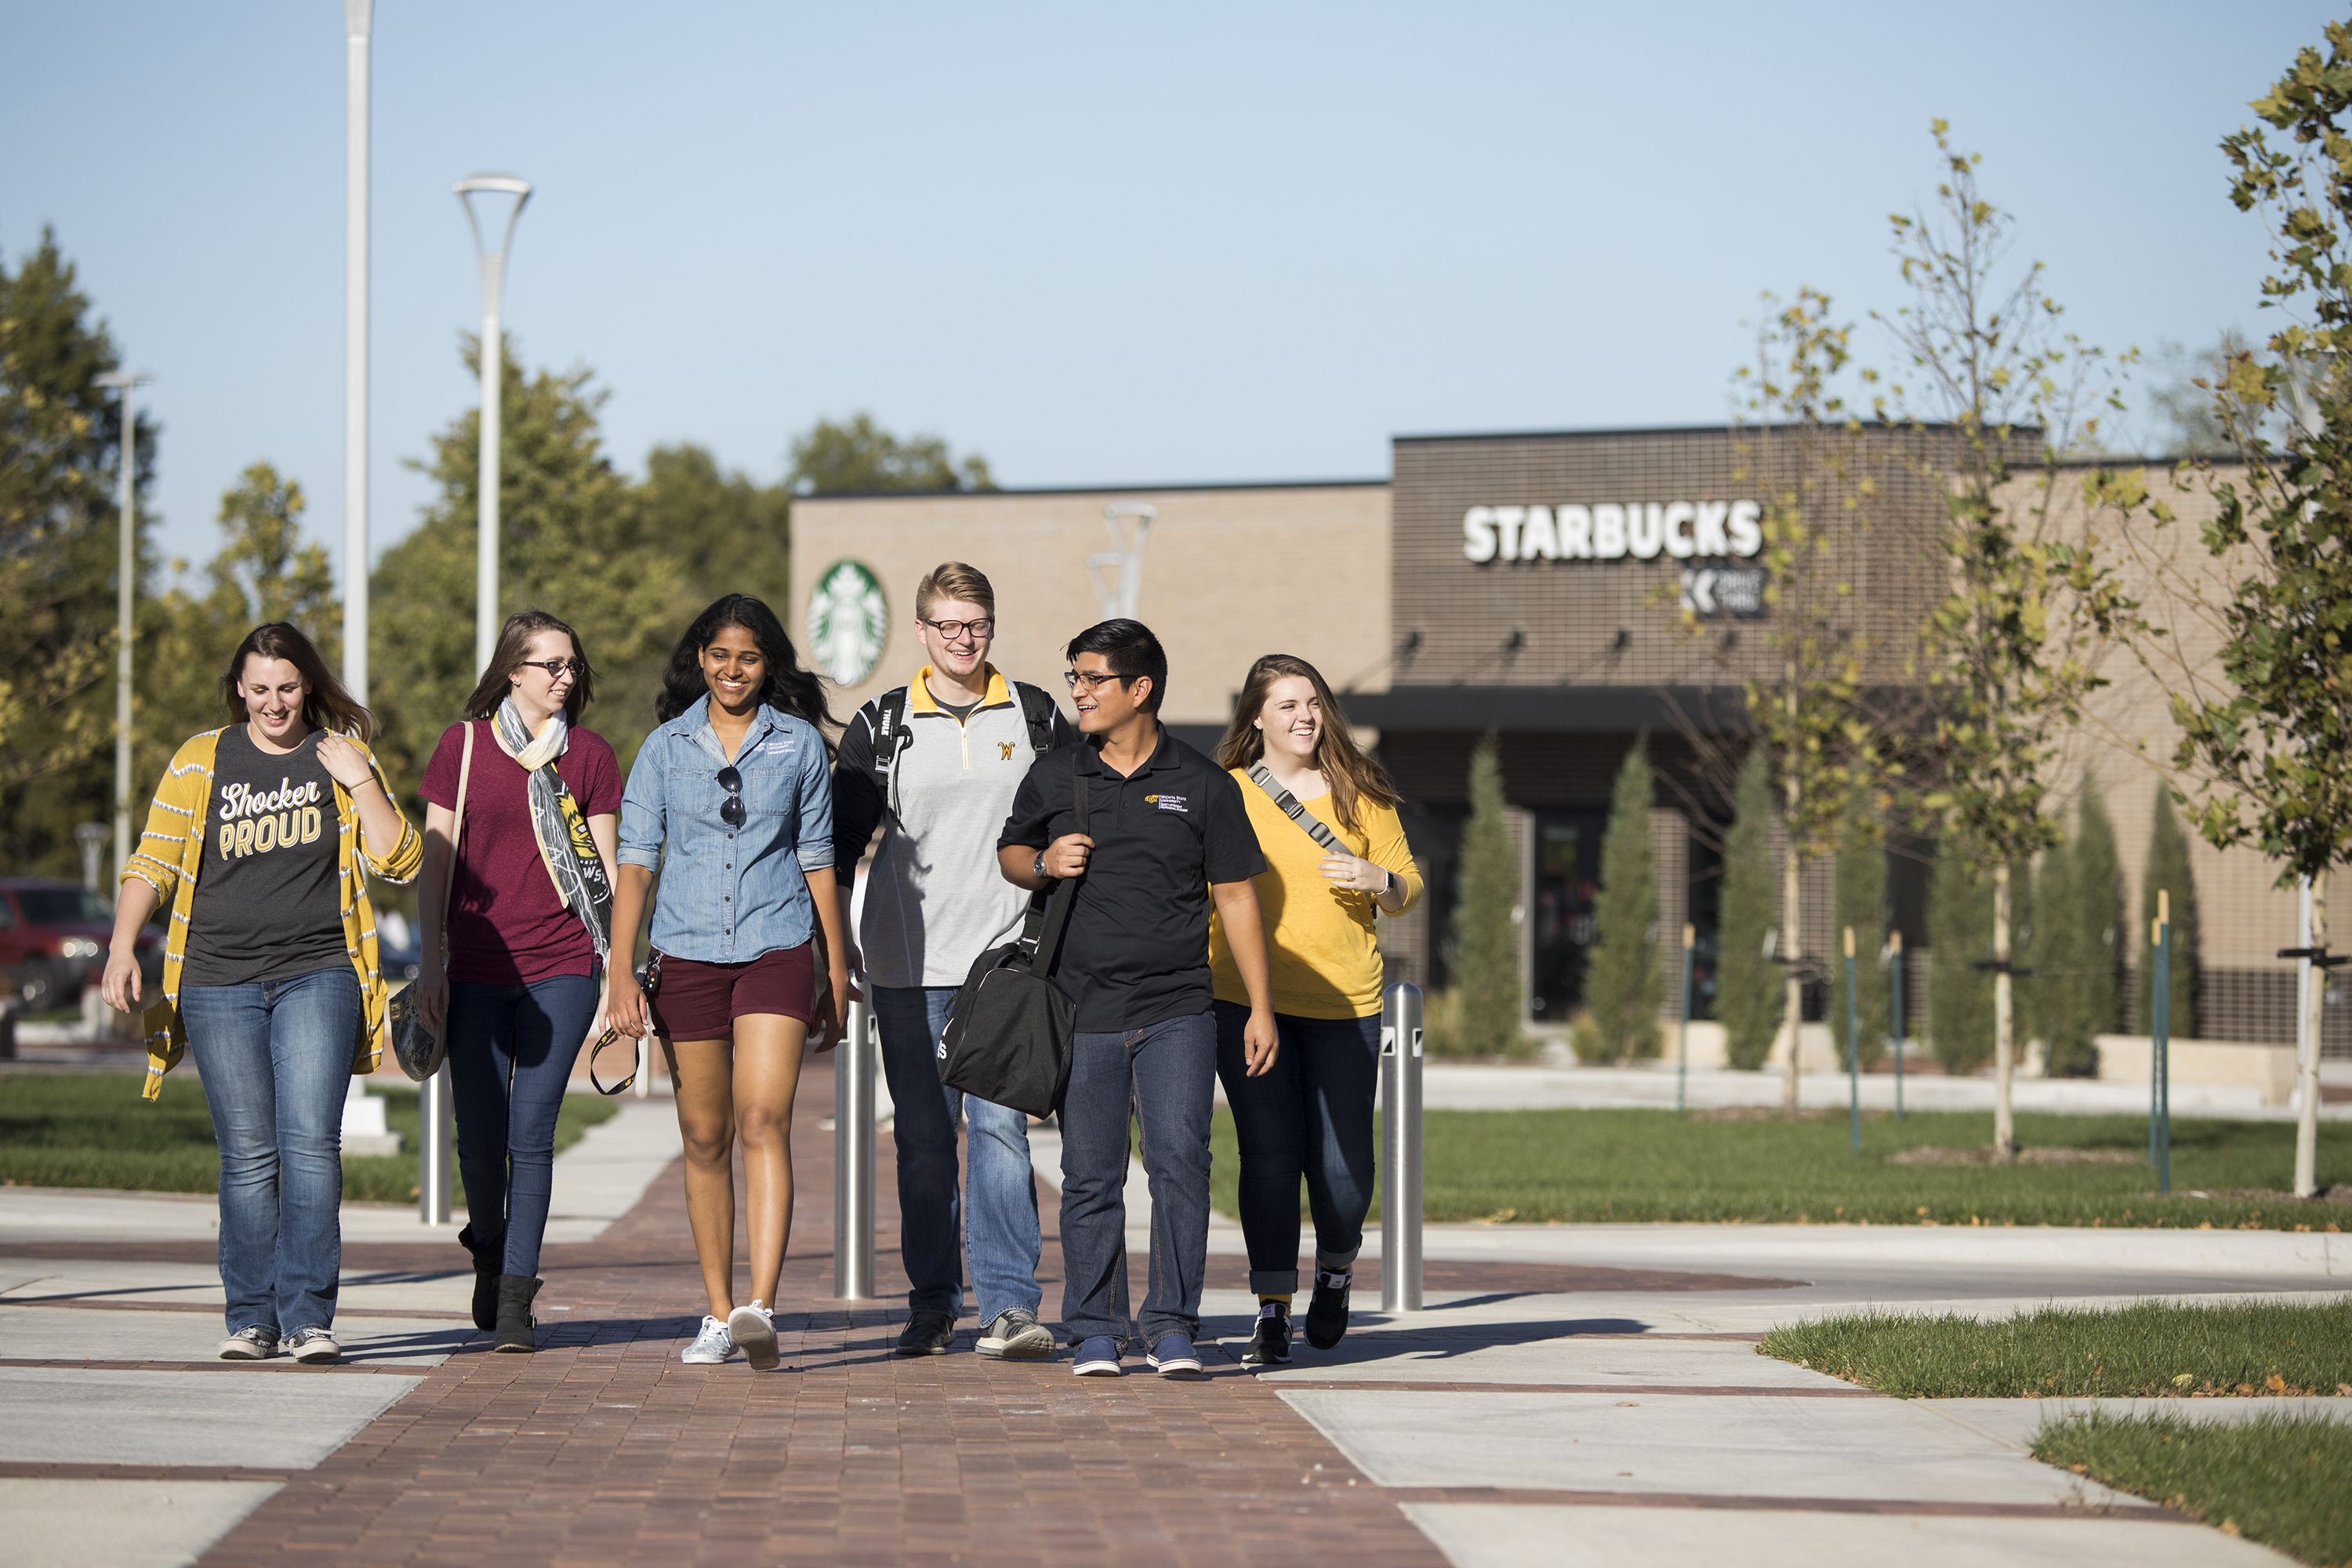 Students walking past Starbucks building